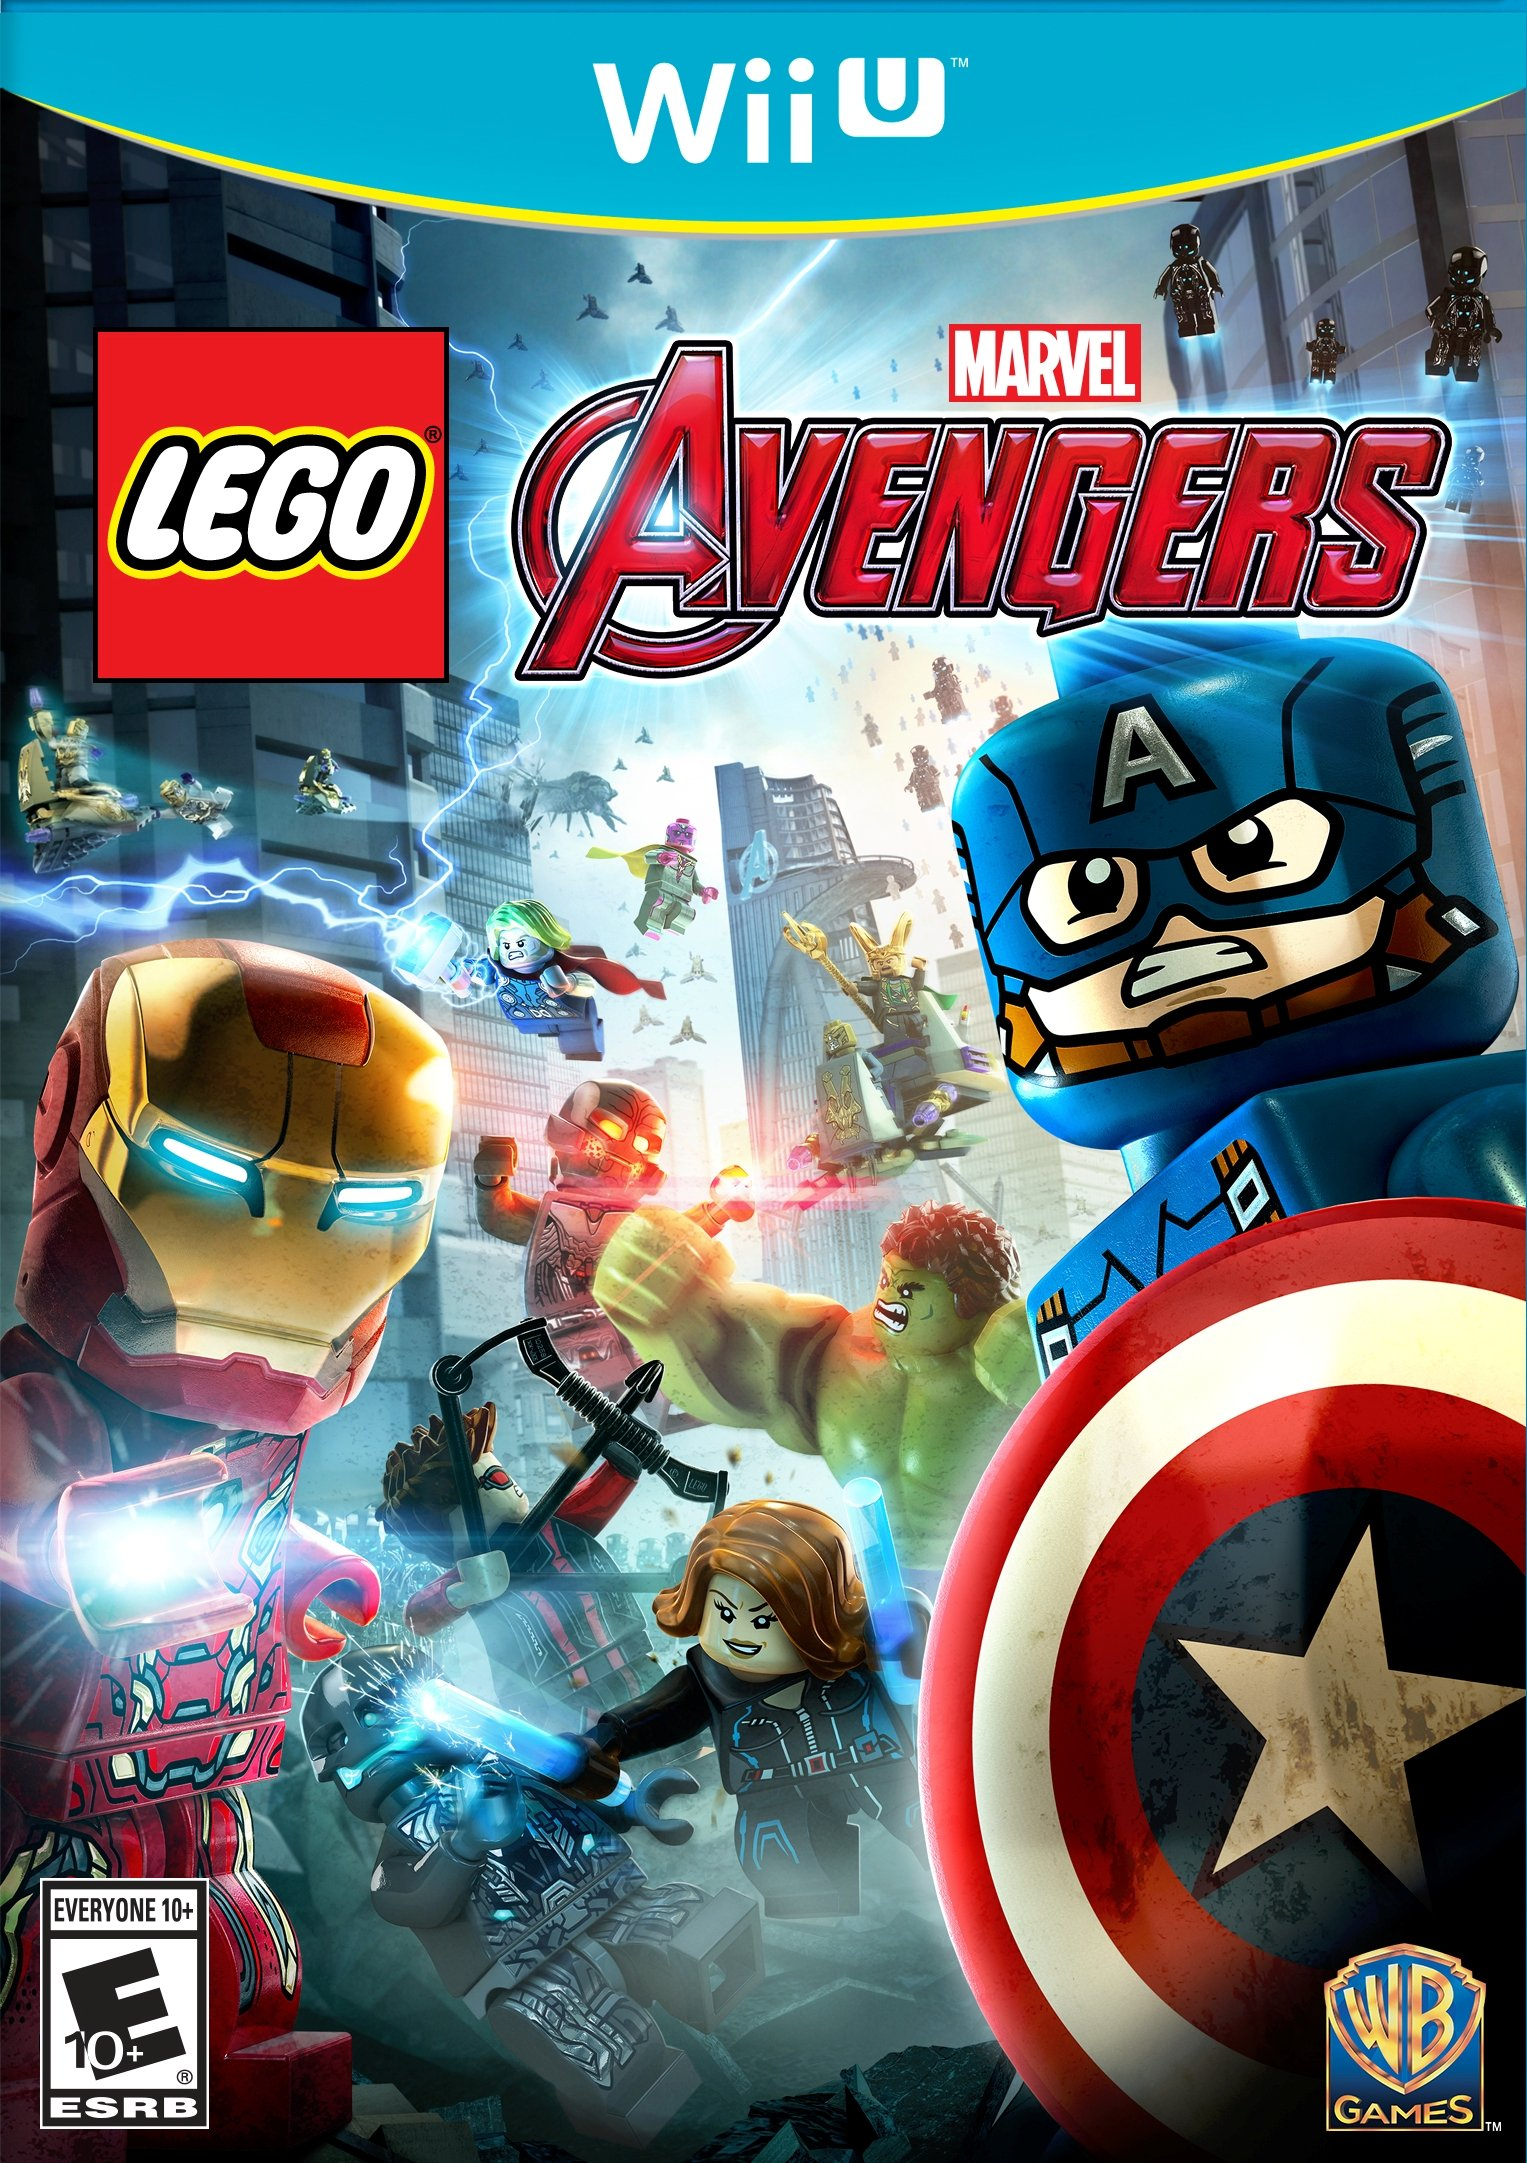 LEGO Marvels Avengers Release Date Xbox 360 PS3 3DS Vita Wii U Xbox One PS4